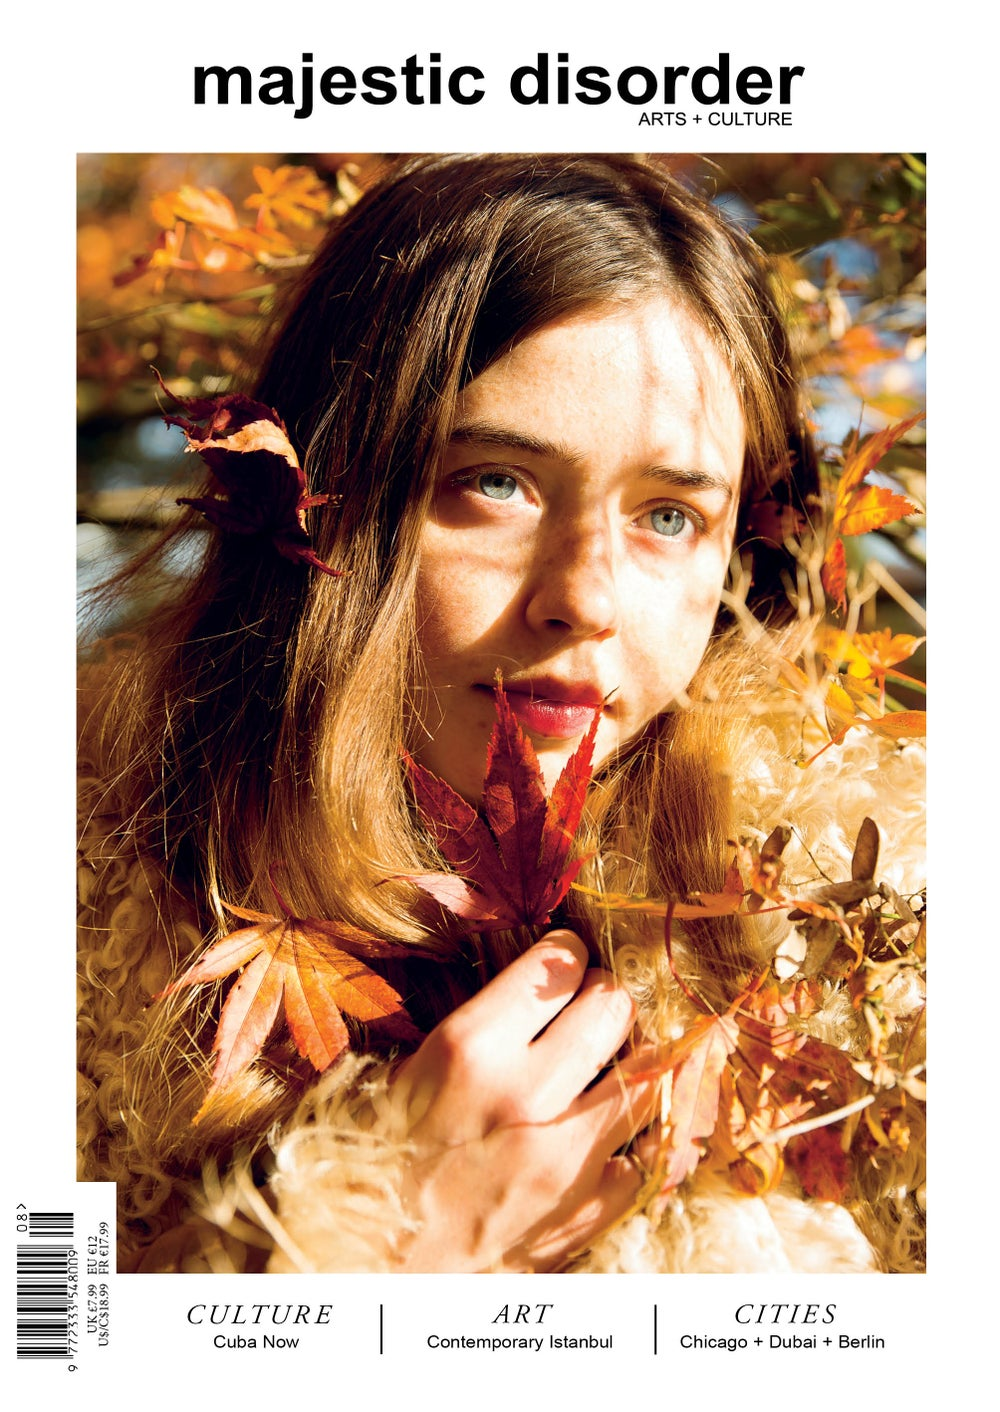 Image of majestic disorder issue 8 Flo Morrissey